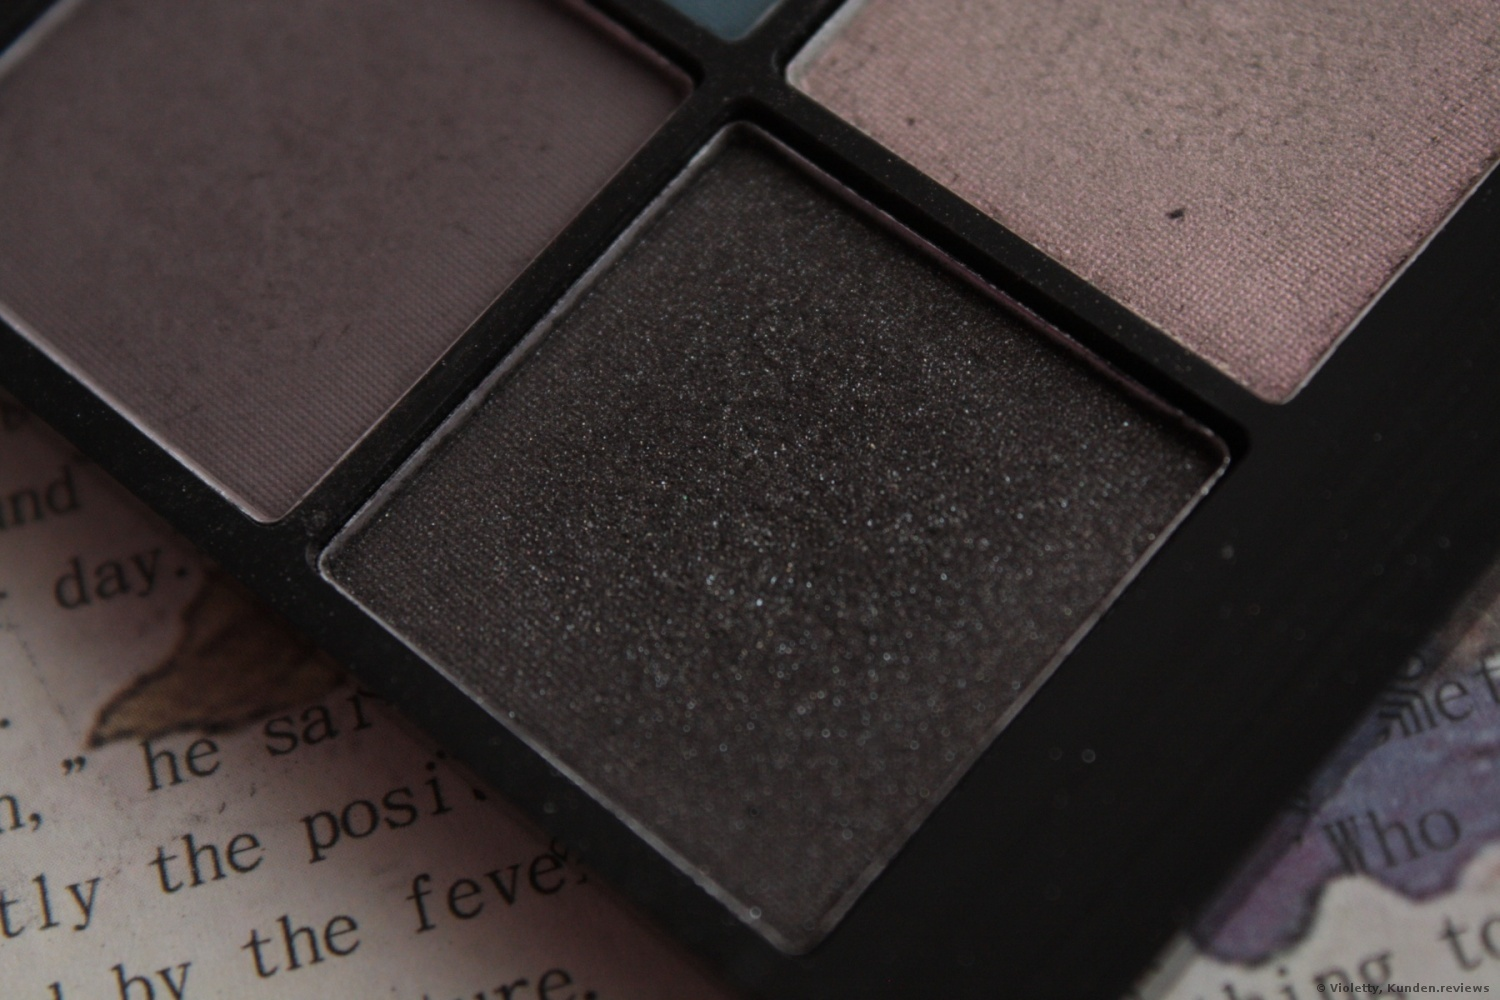 NYX Prof. Makeup Perfect Filter Shadow Palette #6